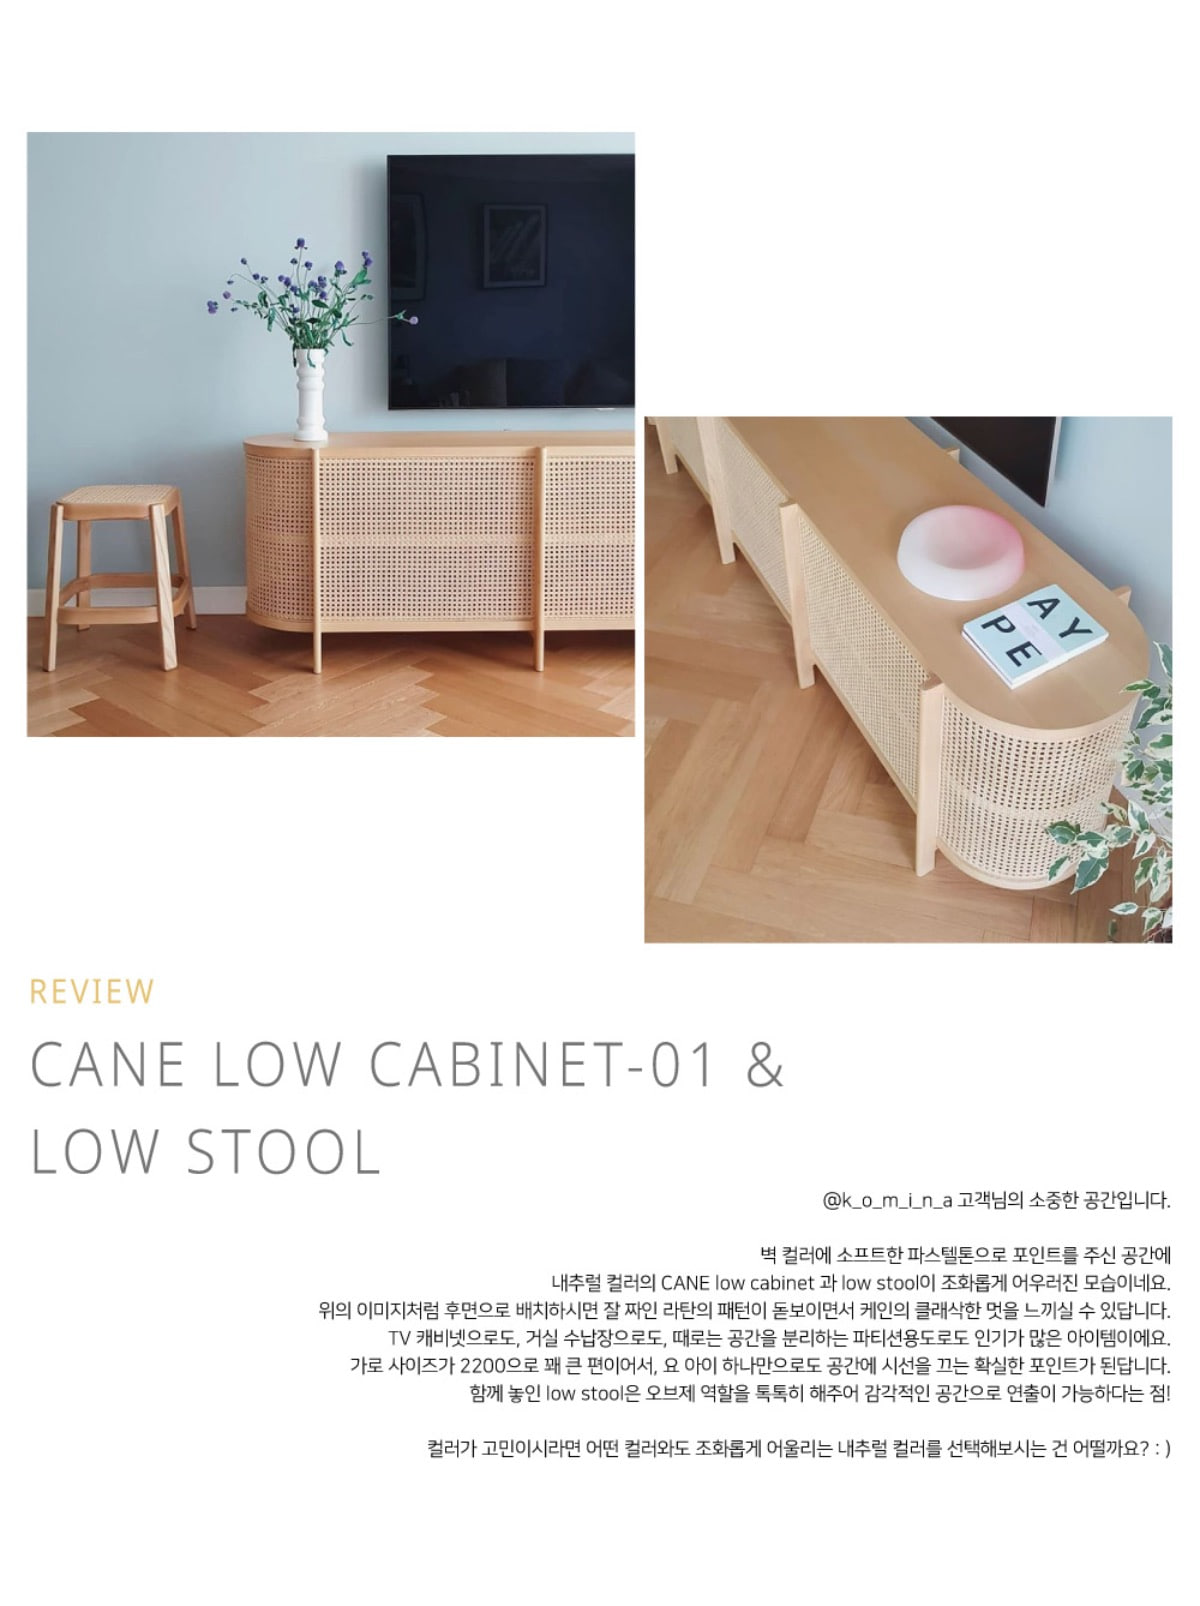 CANE low cabinet&low stool, natural ash